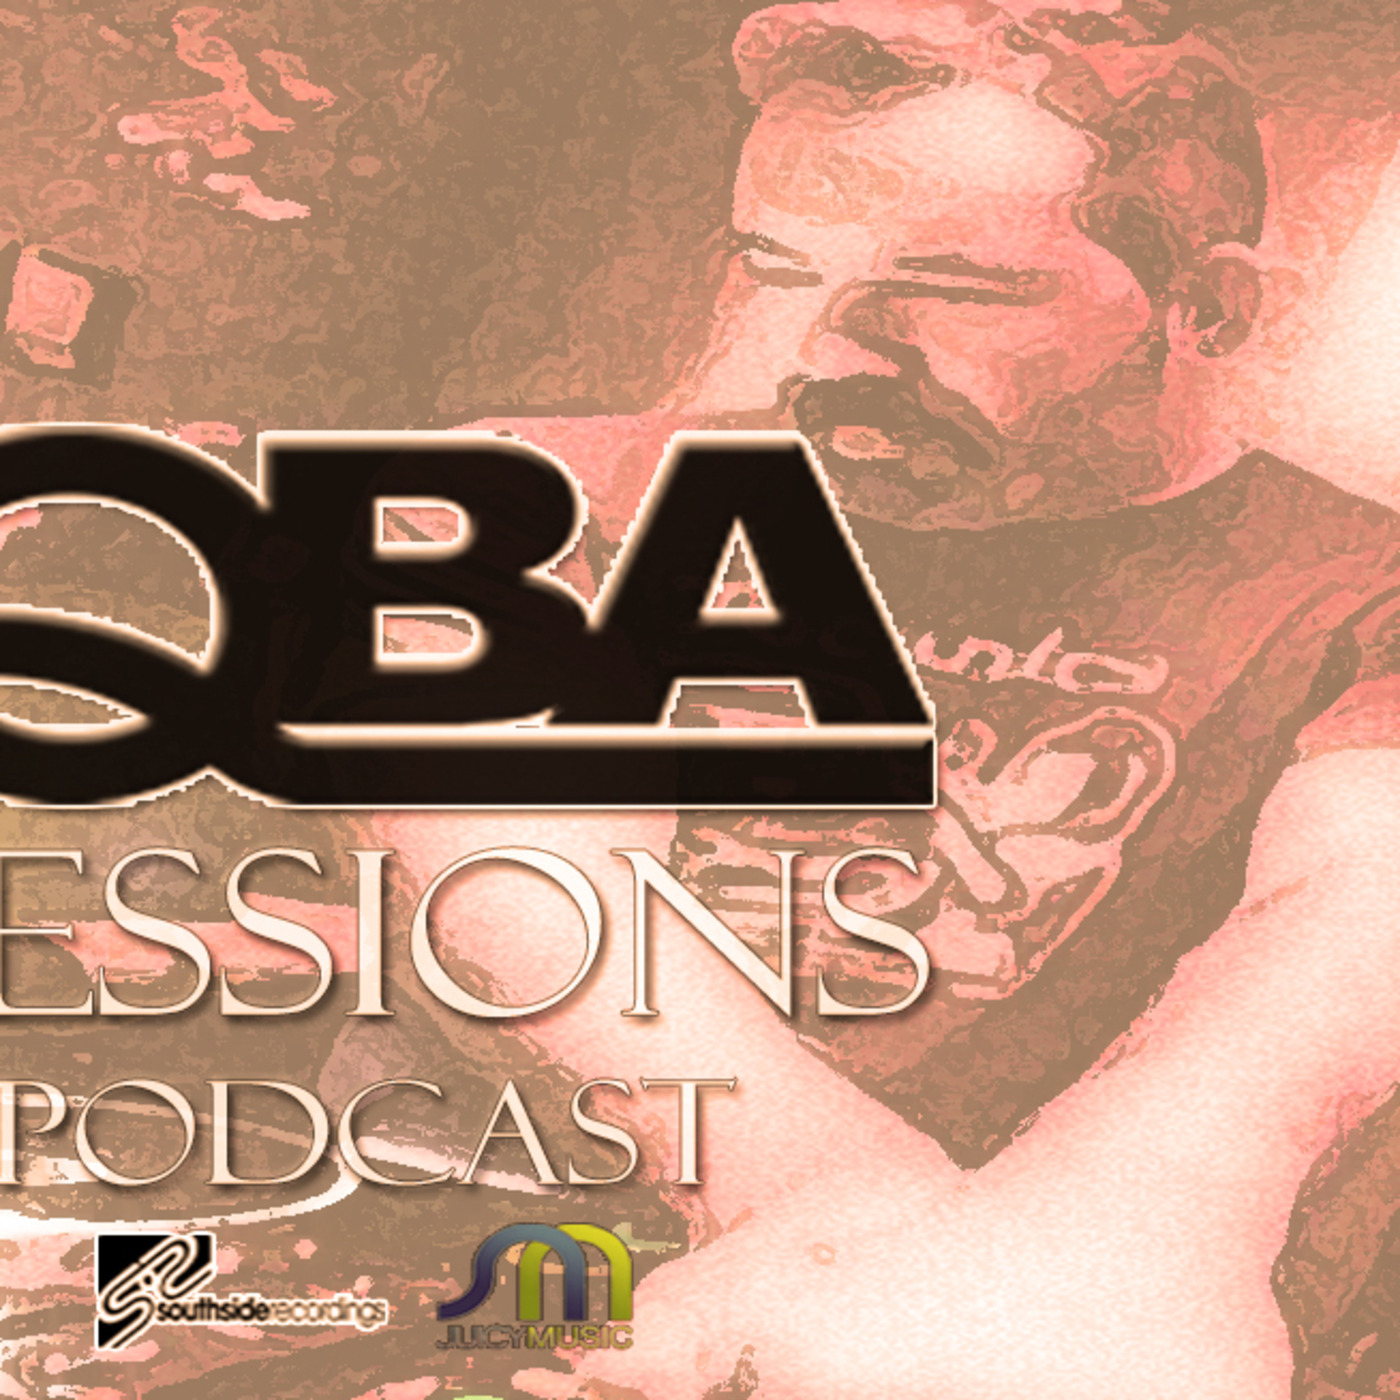 Dj QBA's Podcast